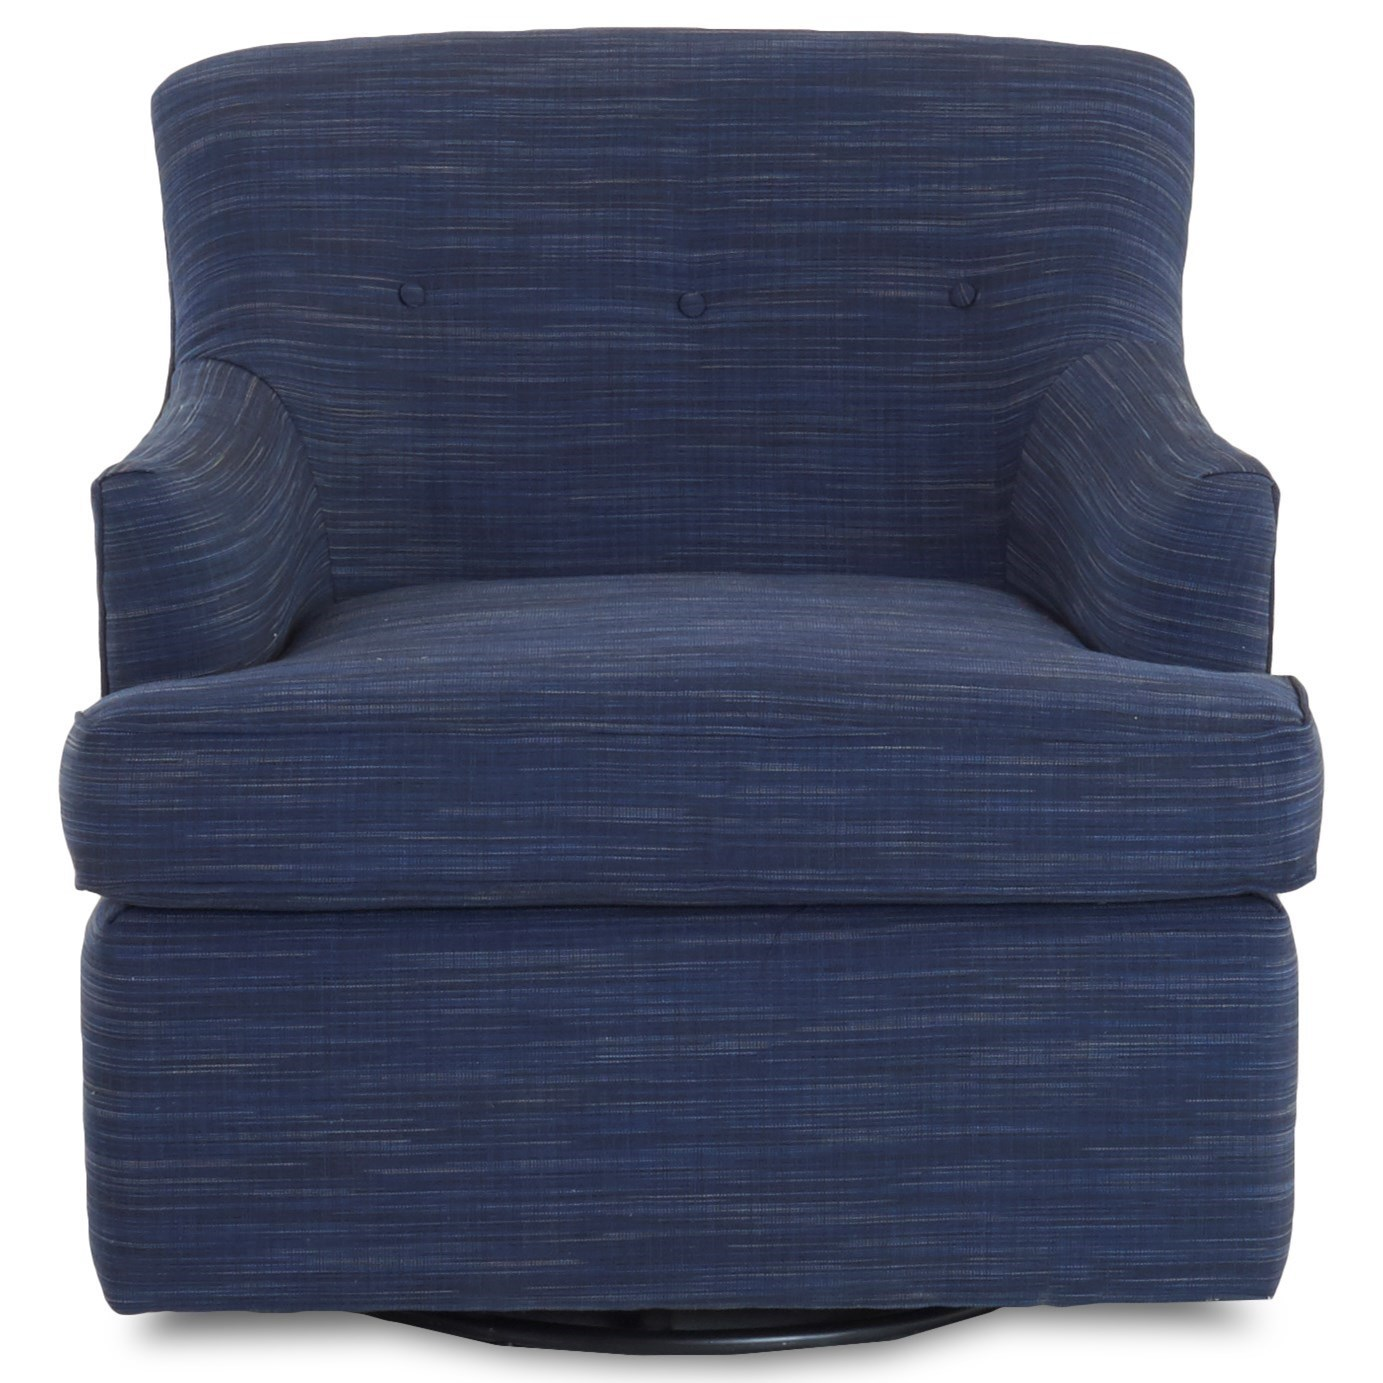 Elizabeth Swivel Glider Chair by Klaussner at Johnny Janosik